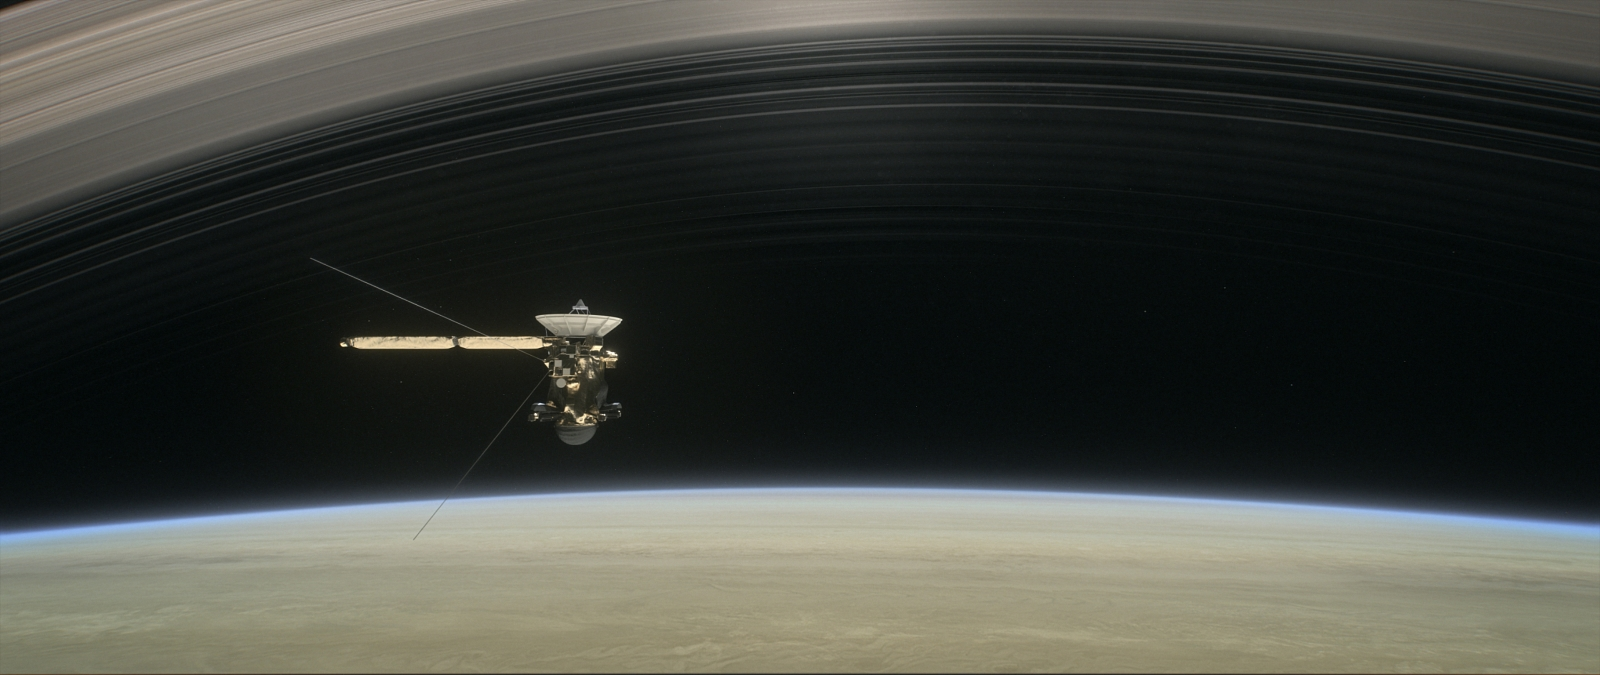 Grand Finale: Cassini over Saturn